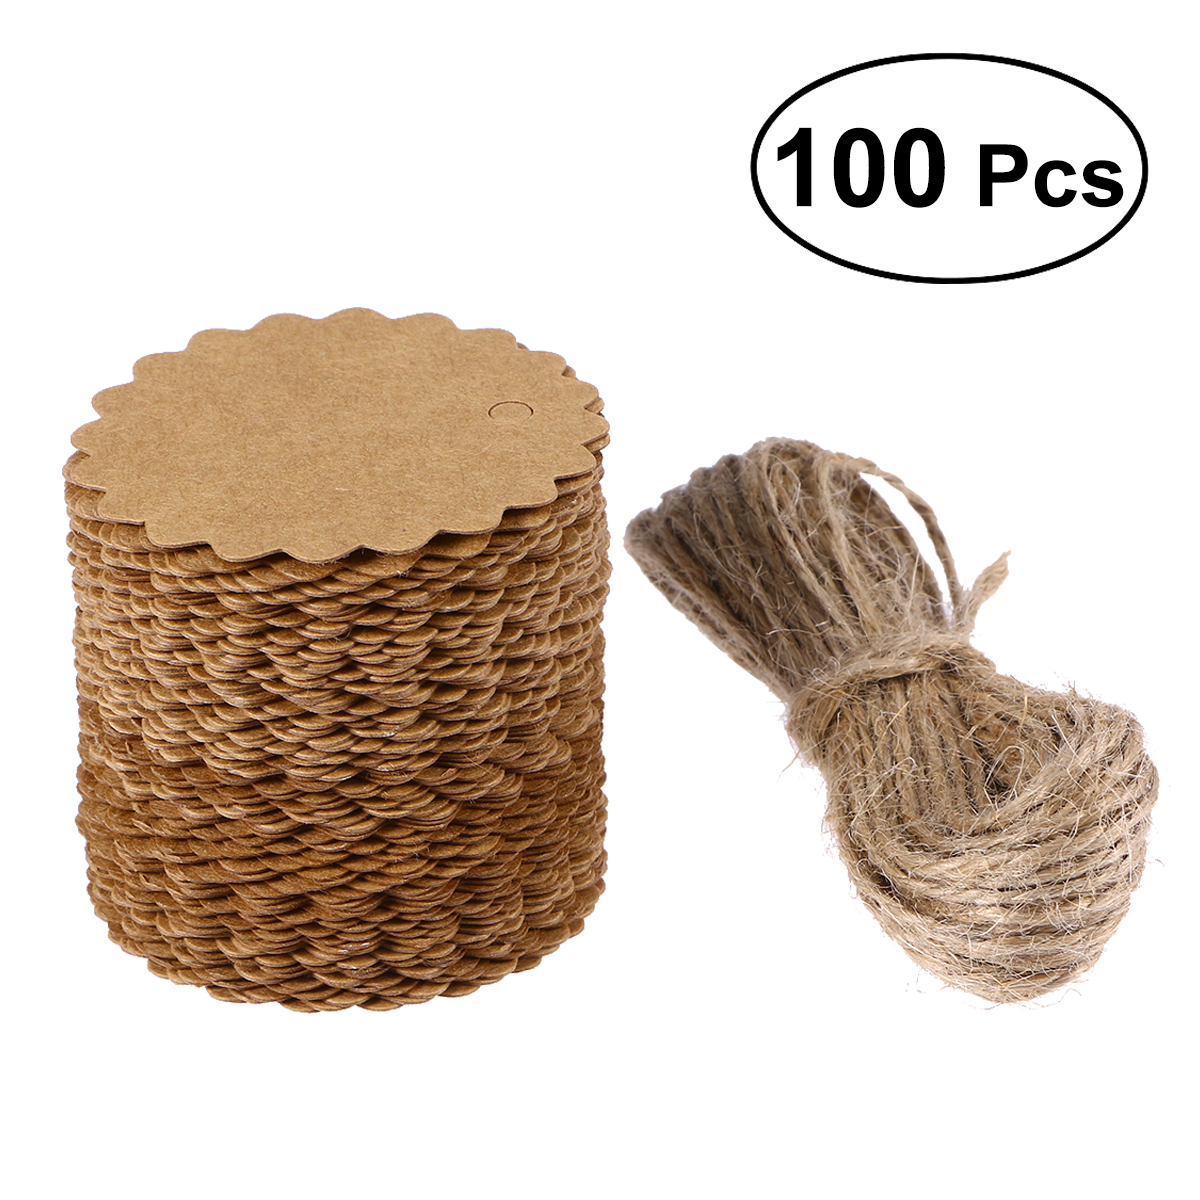 100pcs Rustic Kraft Paper Heart Blank Card with Jute Twines Gift Tags Labels